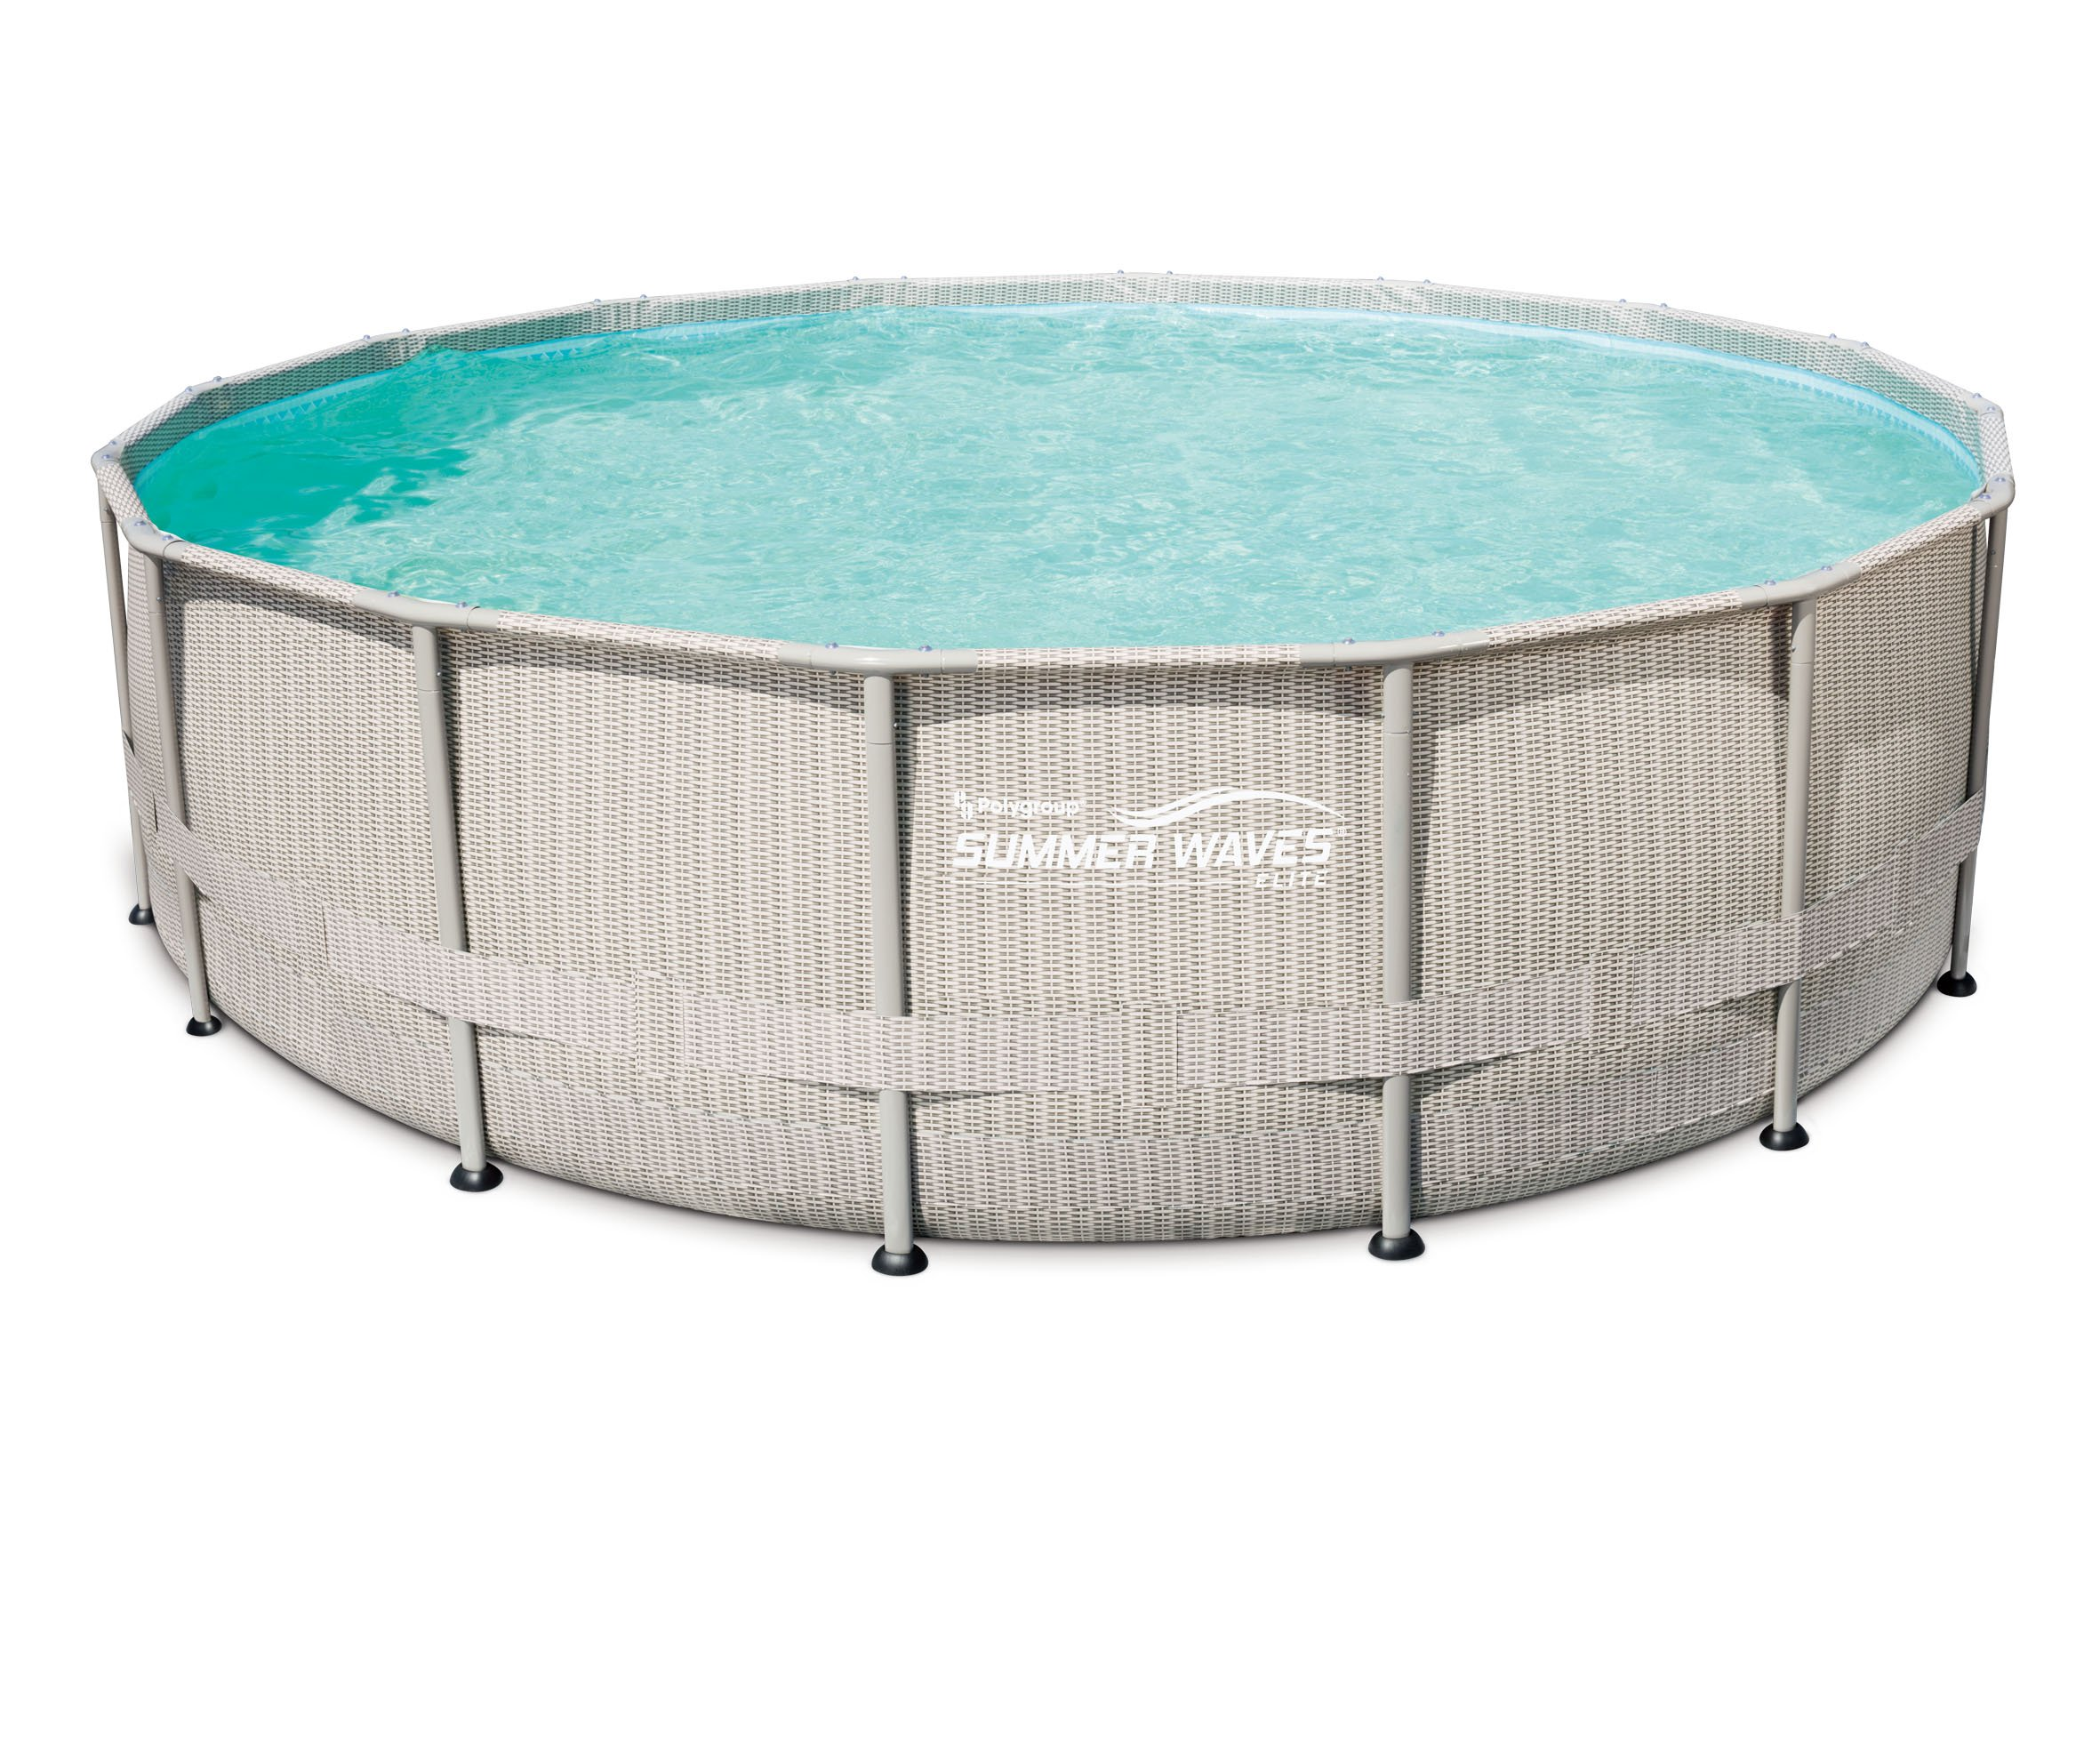 SUMMER WAVES 20ft. Light Wicker Print Elite Frame above Ground Pool, 20 Foot by SUMMER WAVES